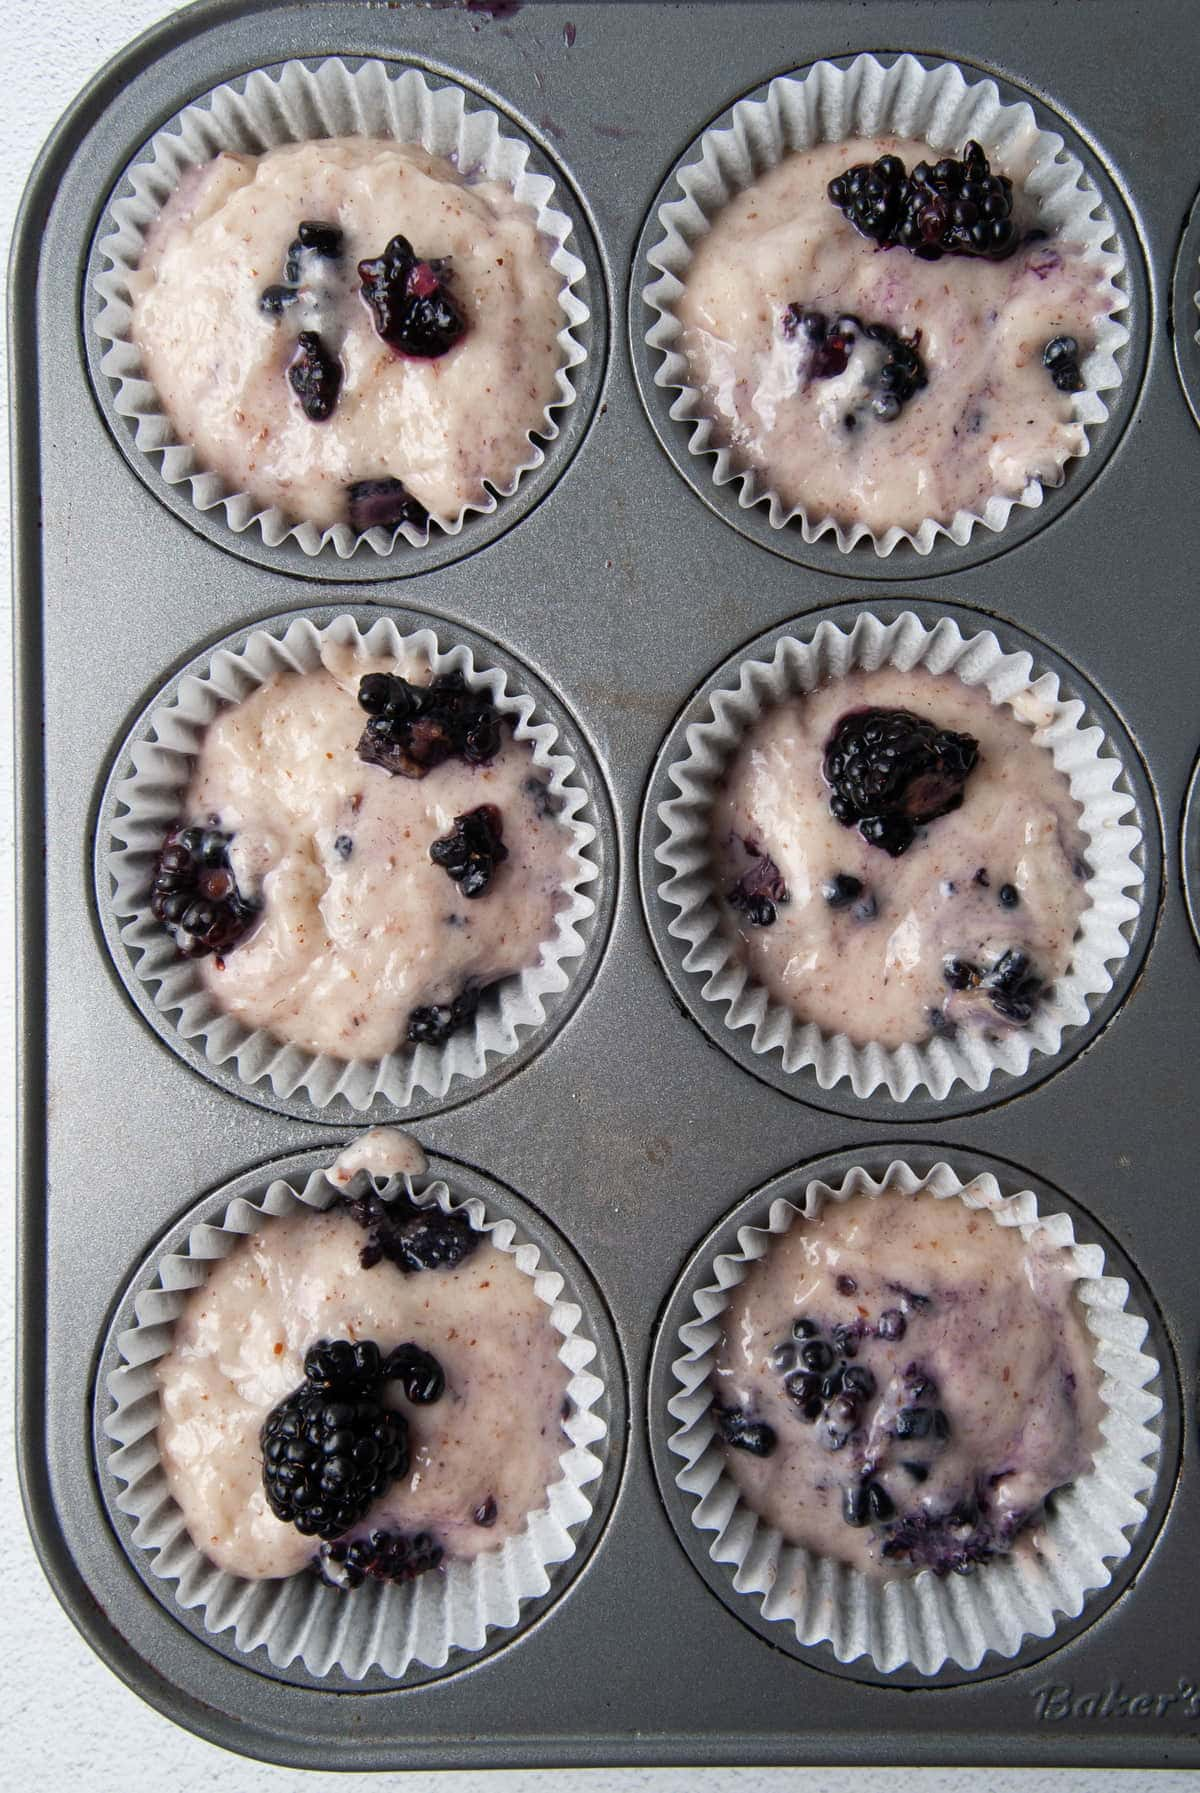 Filling Muffin Tins with muffin batter and adding blackberries on top